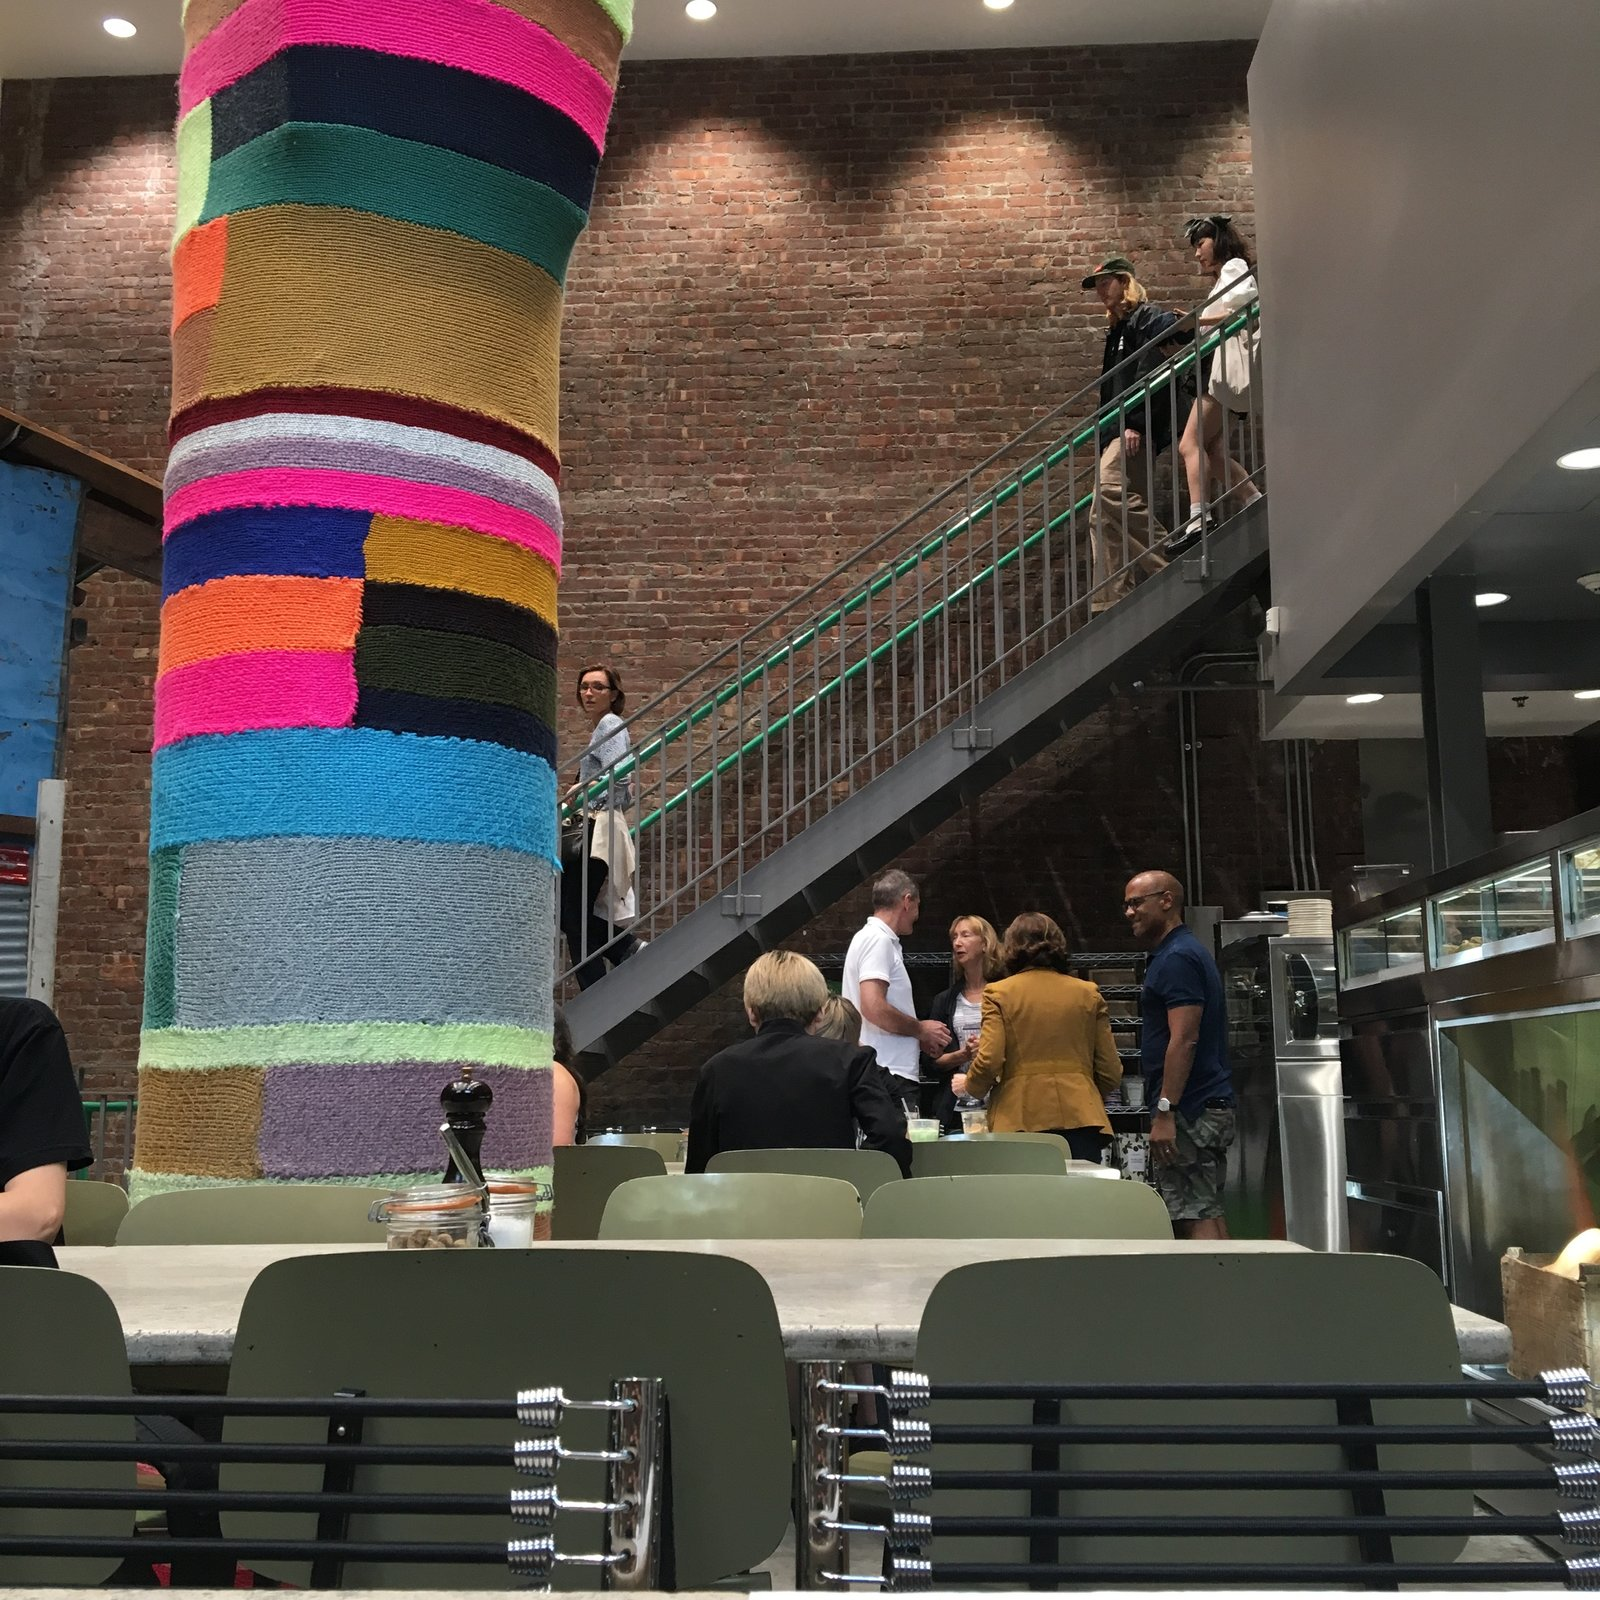 Knitted column by Magda Sayeg, inside the circa-1908 landmarked building in New York, reimagined by Rei Kawakubo as Dover Street Market. Steps from the Dwell office, and my favorite place to get a quick afternoon pick-me-up.  Square Meal